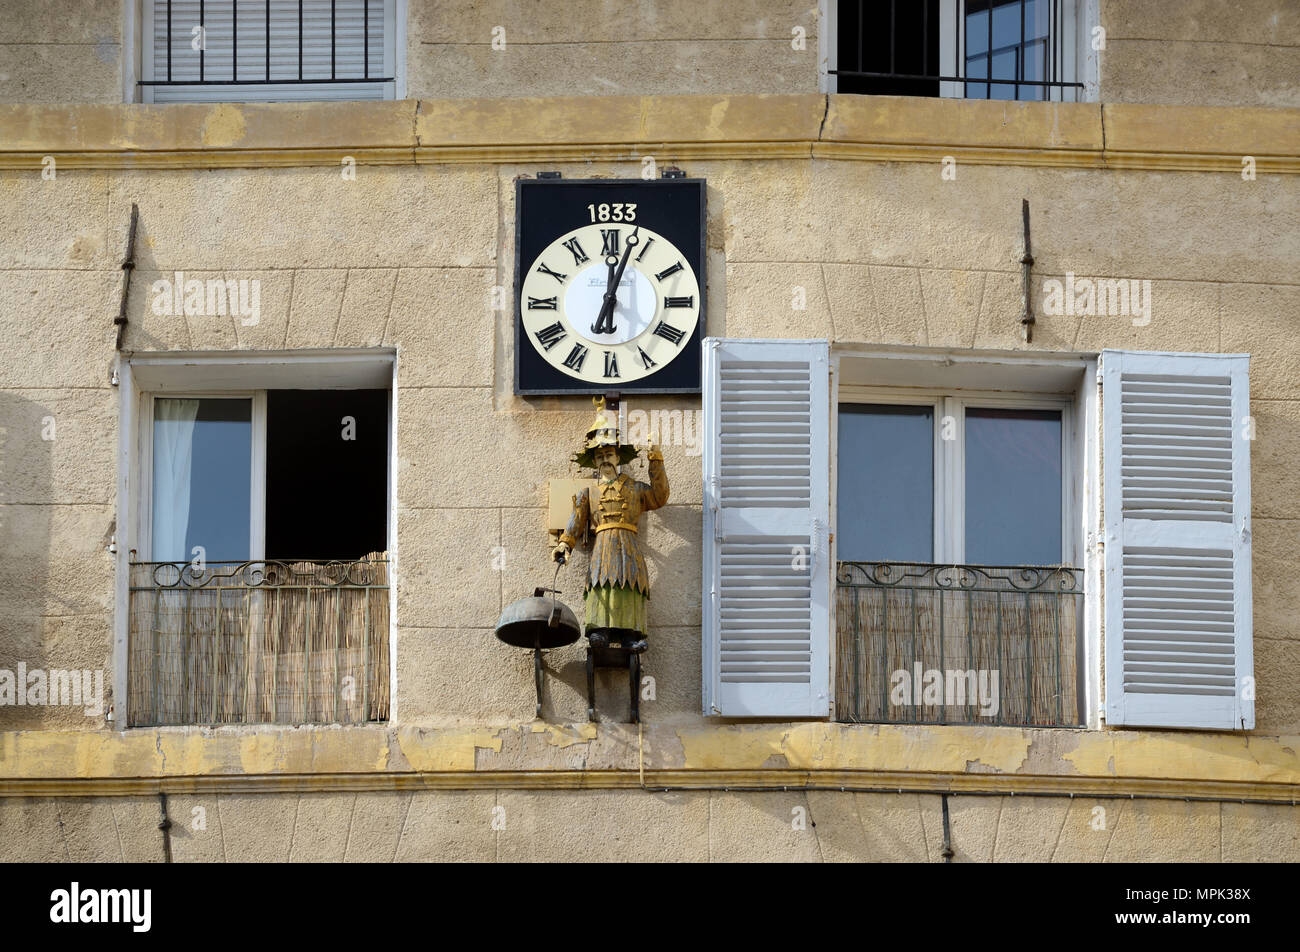 Wall Clock, Automaton Clock or Jacquemart (1833) known as 'La Chinois' or Chinaman on the Place des Precheurs Aix-en-Provence Provence France - Stock Image